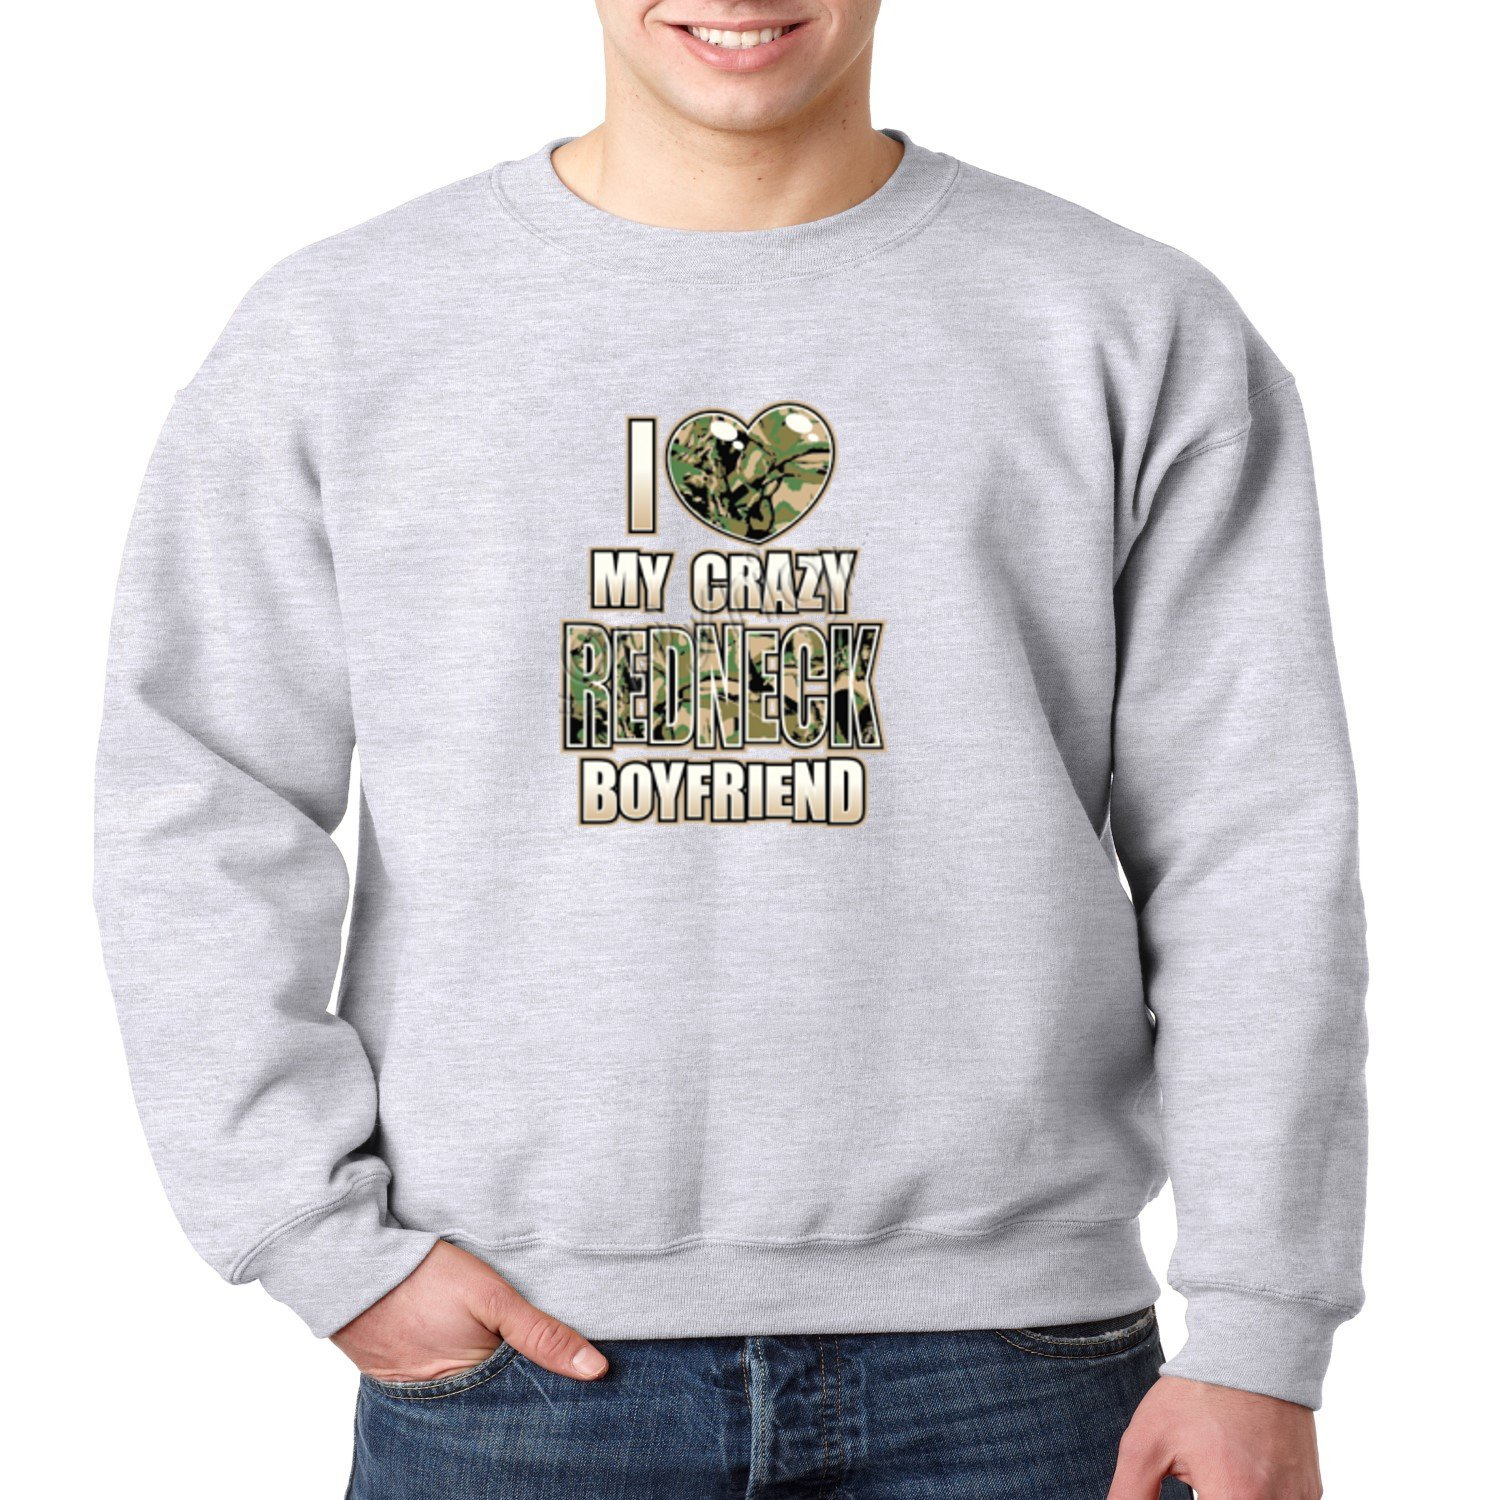 Juiceclouds | Crewneck Sweatshirt I Love My Crazy Redneck Boyfriend (Heather Gray, S)